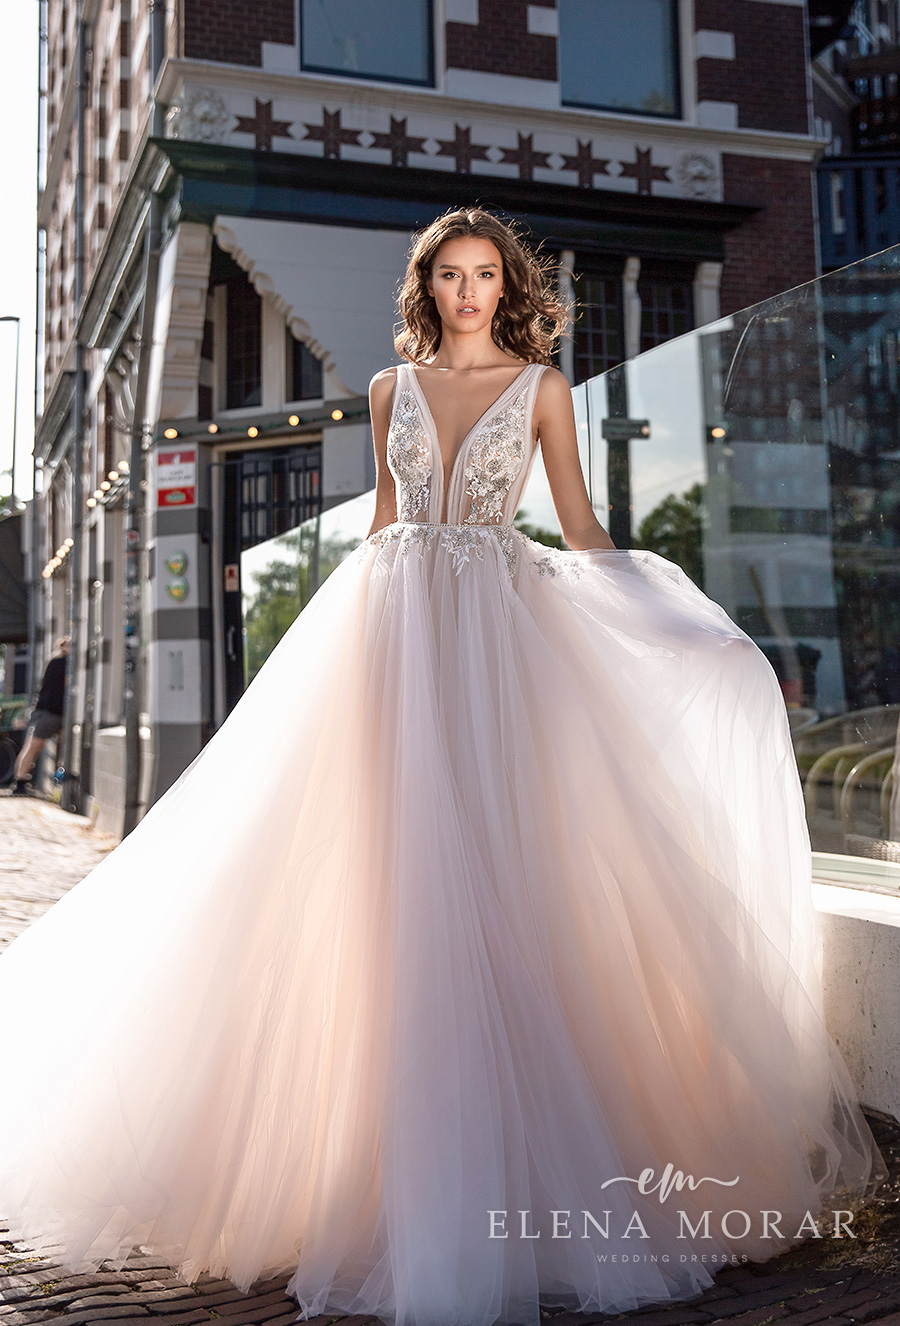 elena morar 2021 rotterdam bridal sleeveless with strap deep v neck heavily embellished bodice tulle skirt romantic soft a line wedding dress low v back sweep train (rm001) mv